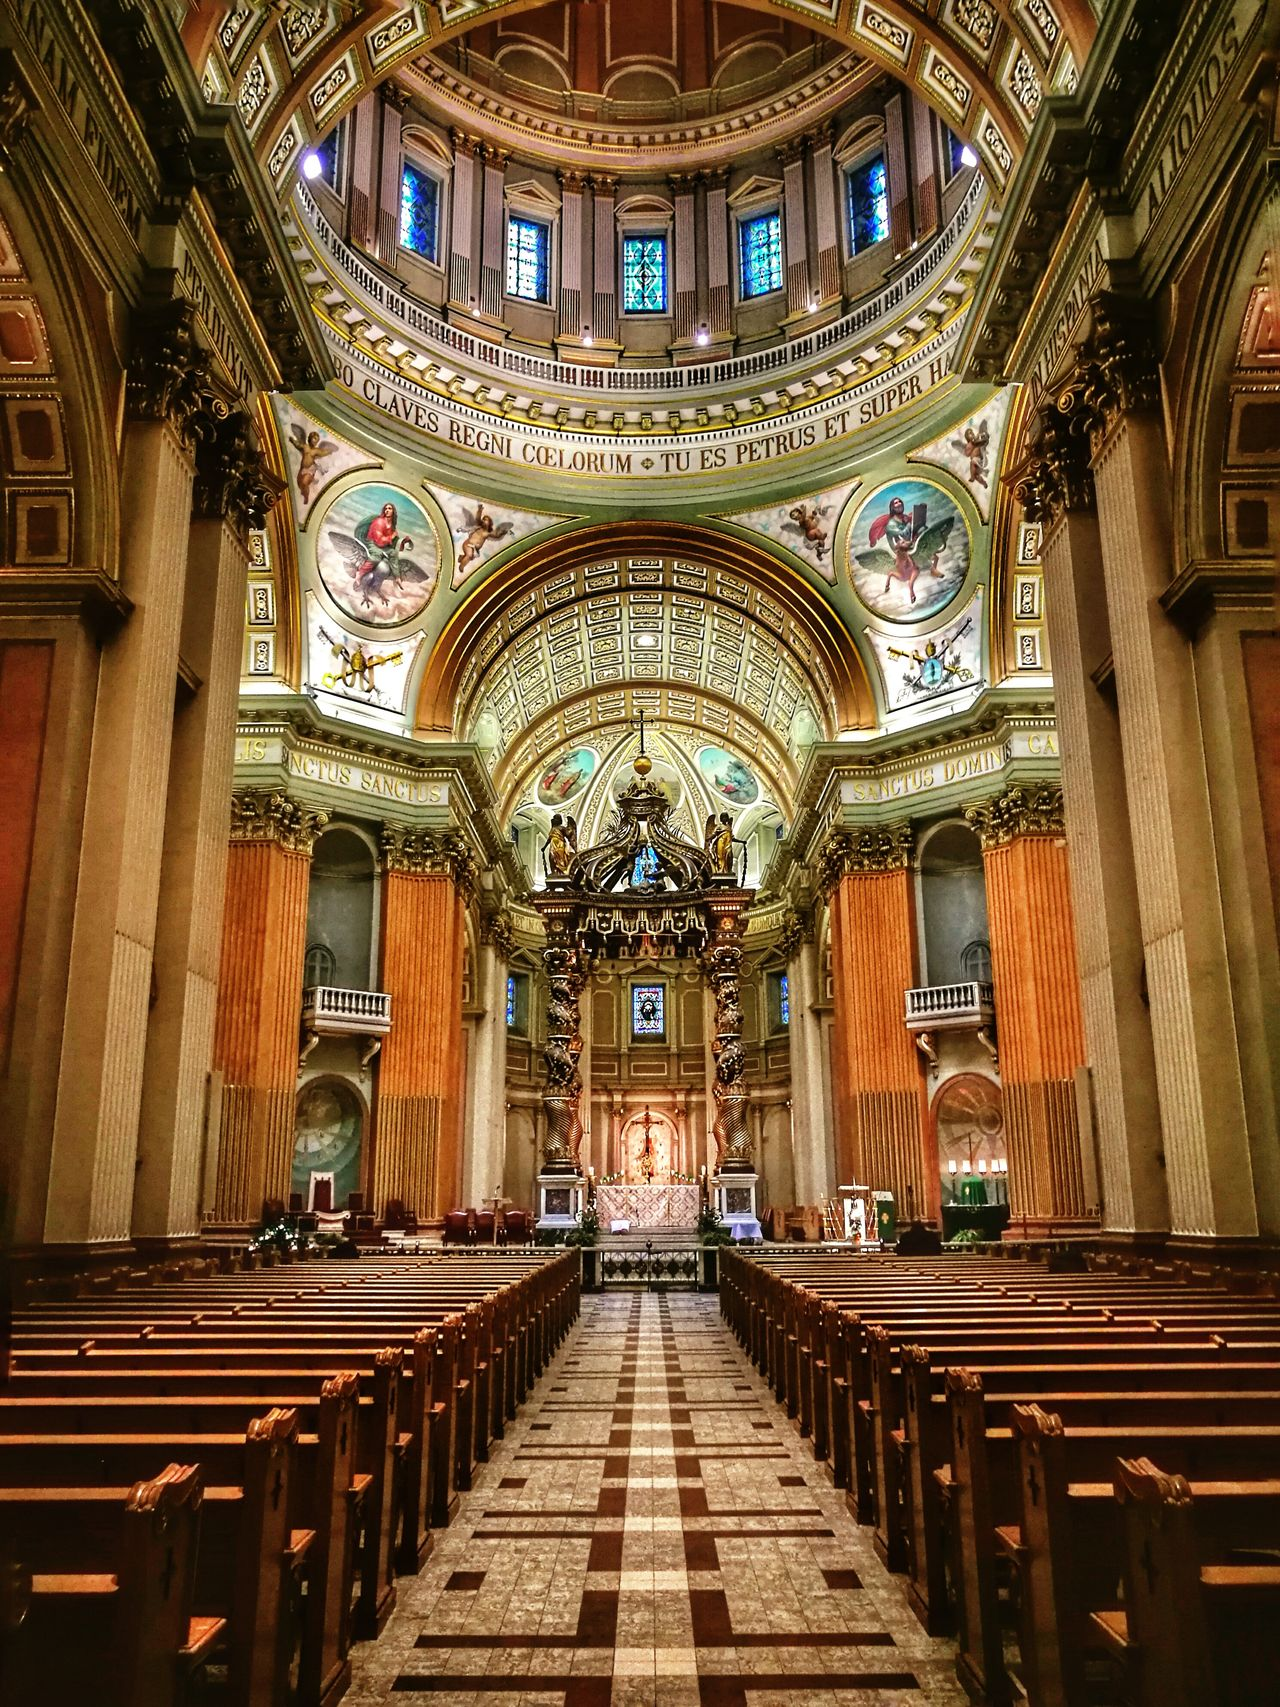 Mary Queen of the world cathedral, Montreal, Canada, QC Architectural Column Travel Destinations Architecture Indoors  Place Of Worship Religion Arch No People Cathedral Montréal Canada Photos HuaweiP9 Huaweiphotography Illuminated Architecture Built Structure Scenics Window Merry Queen Of The World Catherdral Cathedrale Cathedralenotredame